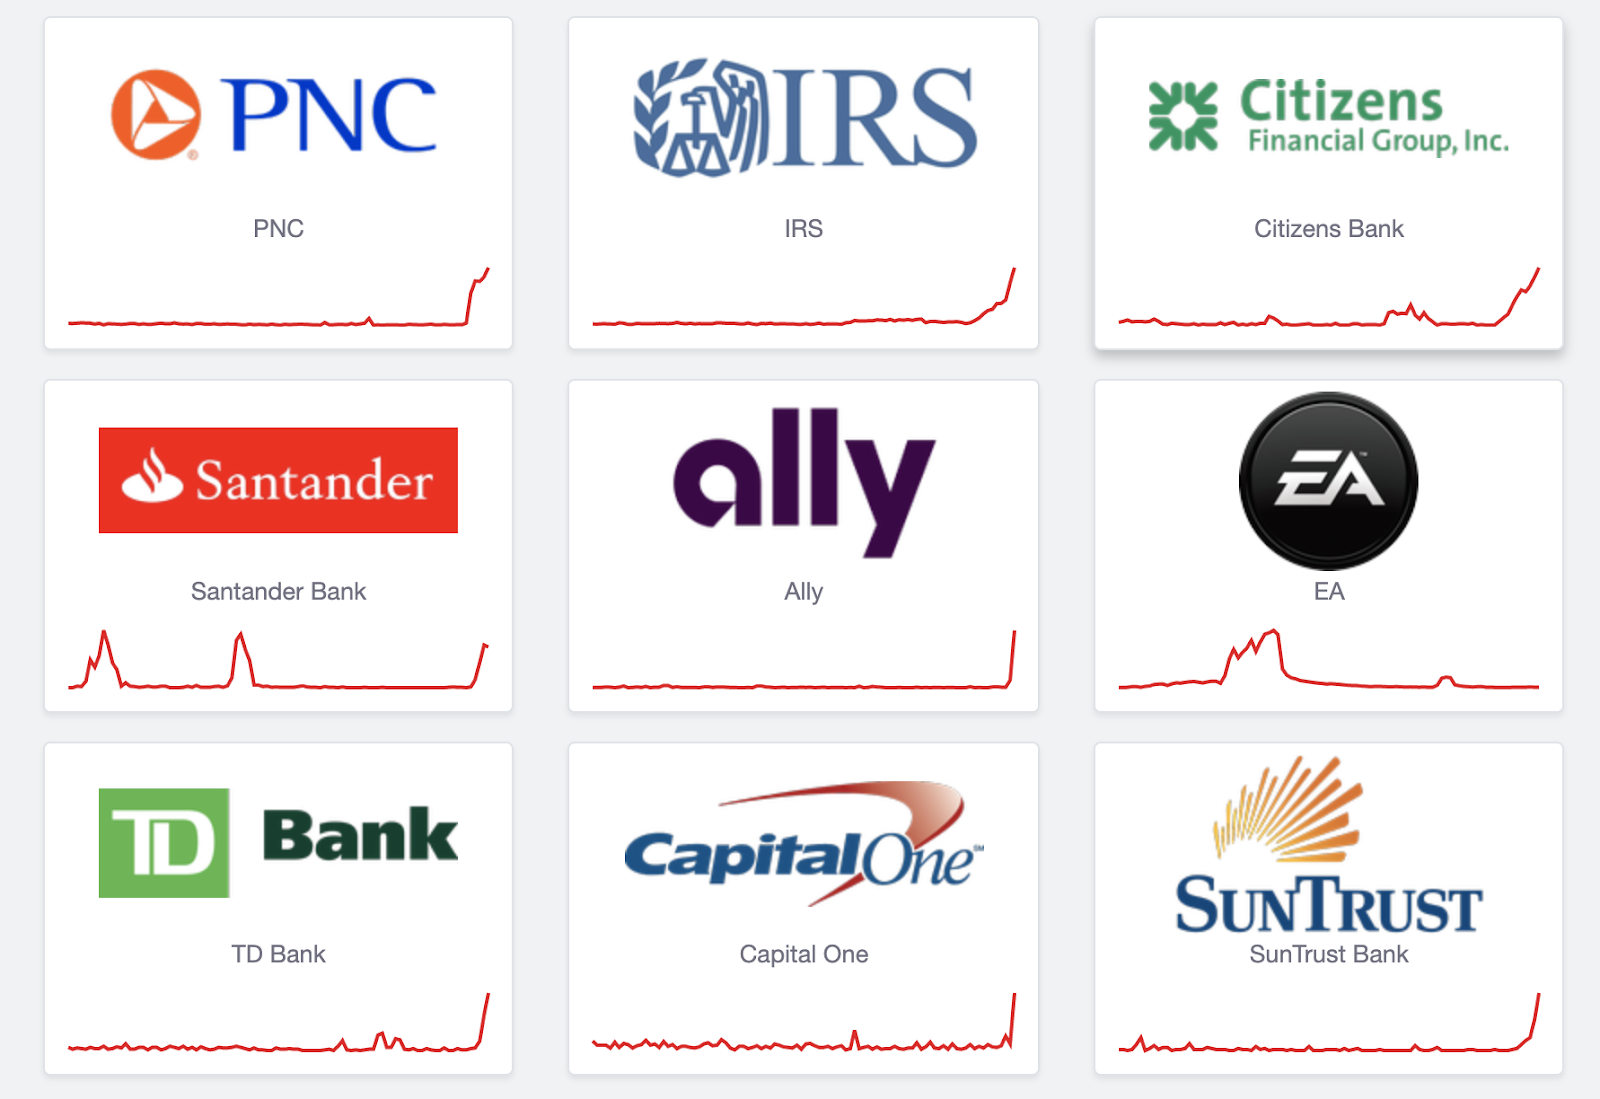 Affected mobile banking apps include TD Bank, Capital One, SunTrust, Santander Bank, PNC, Citizens Bank and others that I couldn't fit in this screenshot.